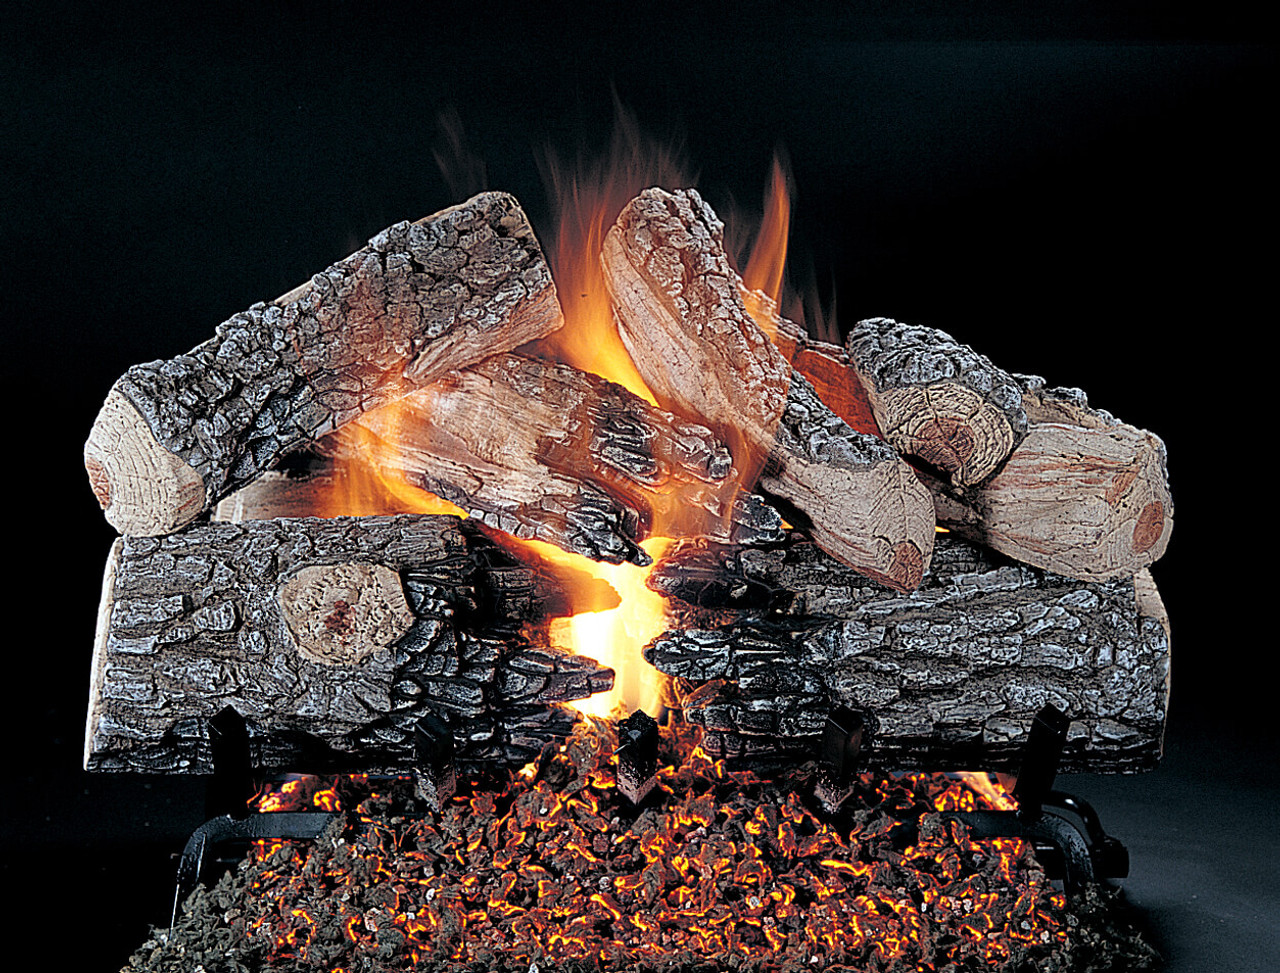 Evening Prestige by Rasmussen Gas Logs. Shown in 24-inch set size with FX burner and Grate.